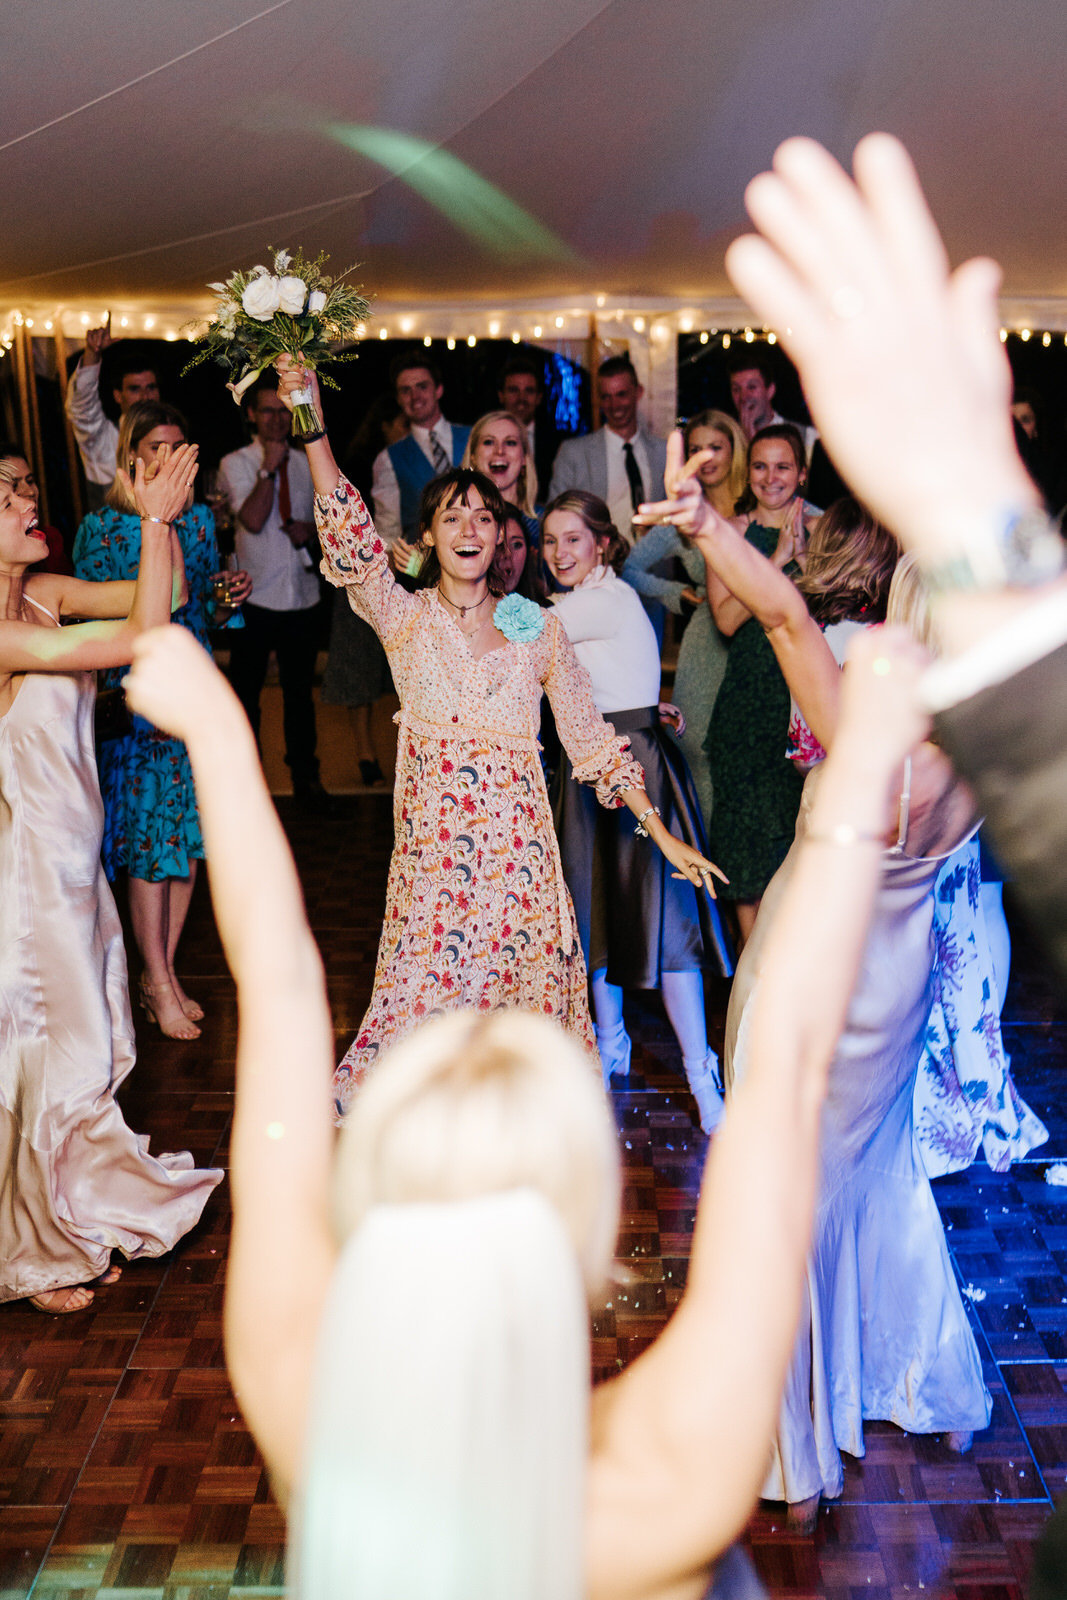 Guest emerges victorious and catches bouquet that bride threw